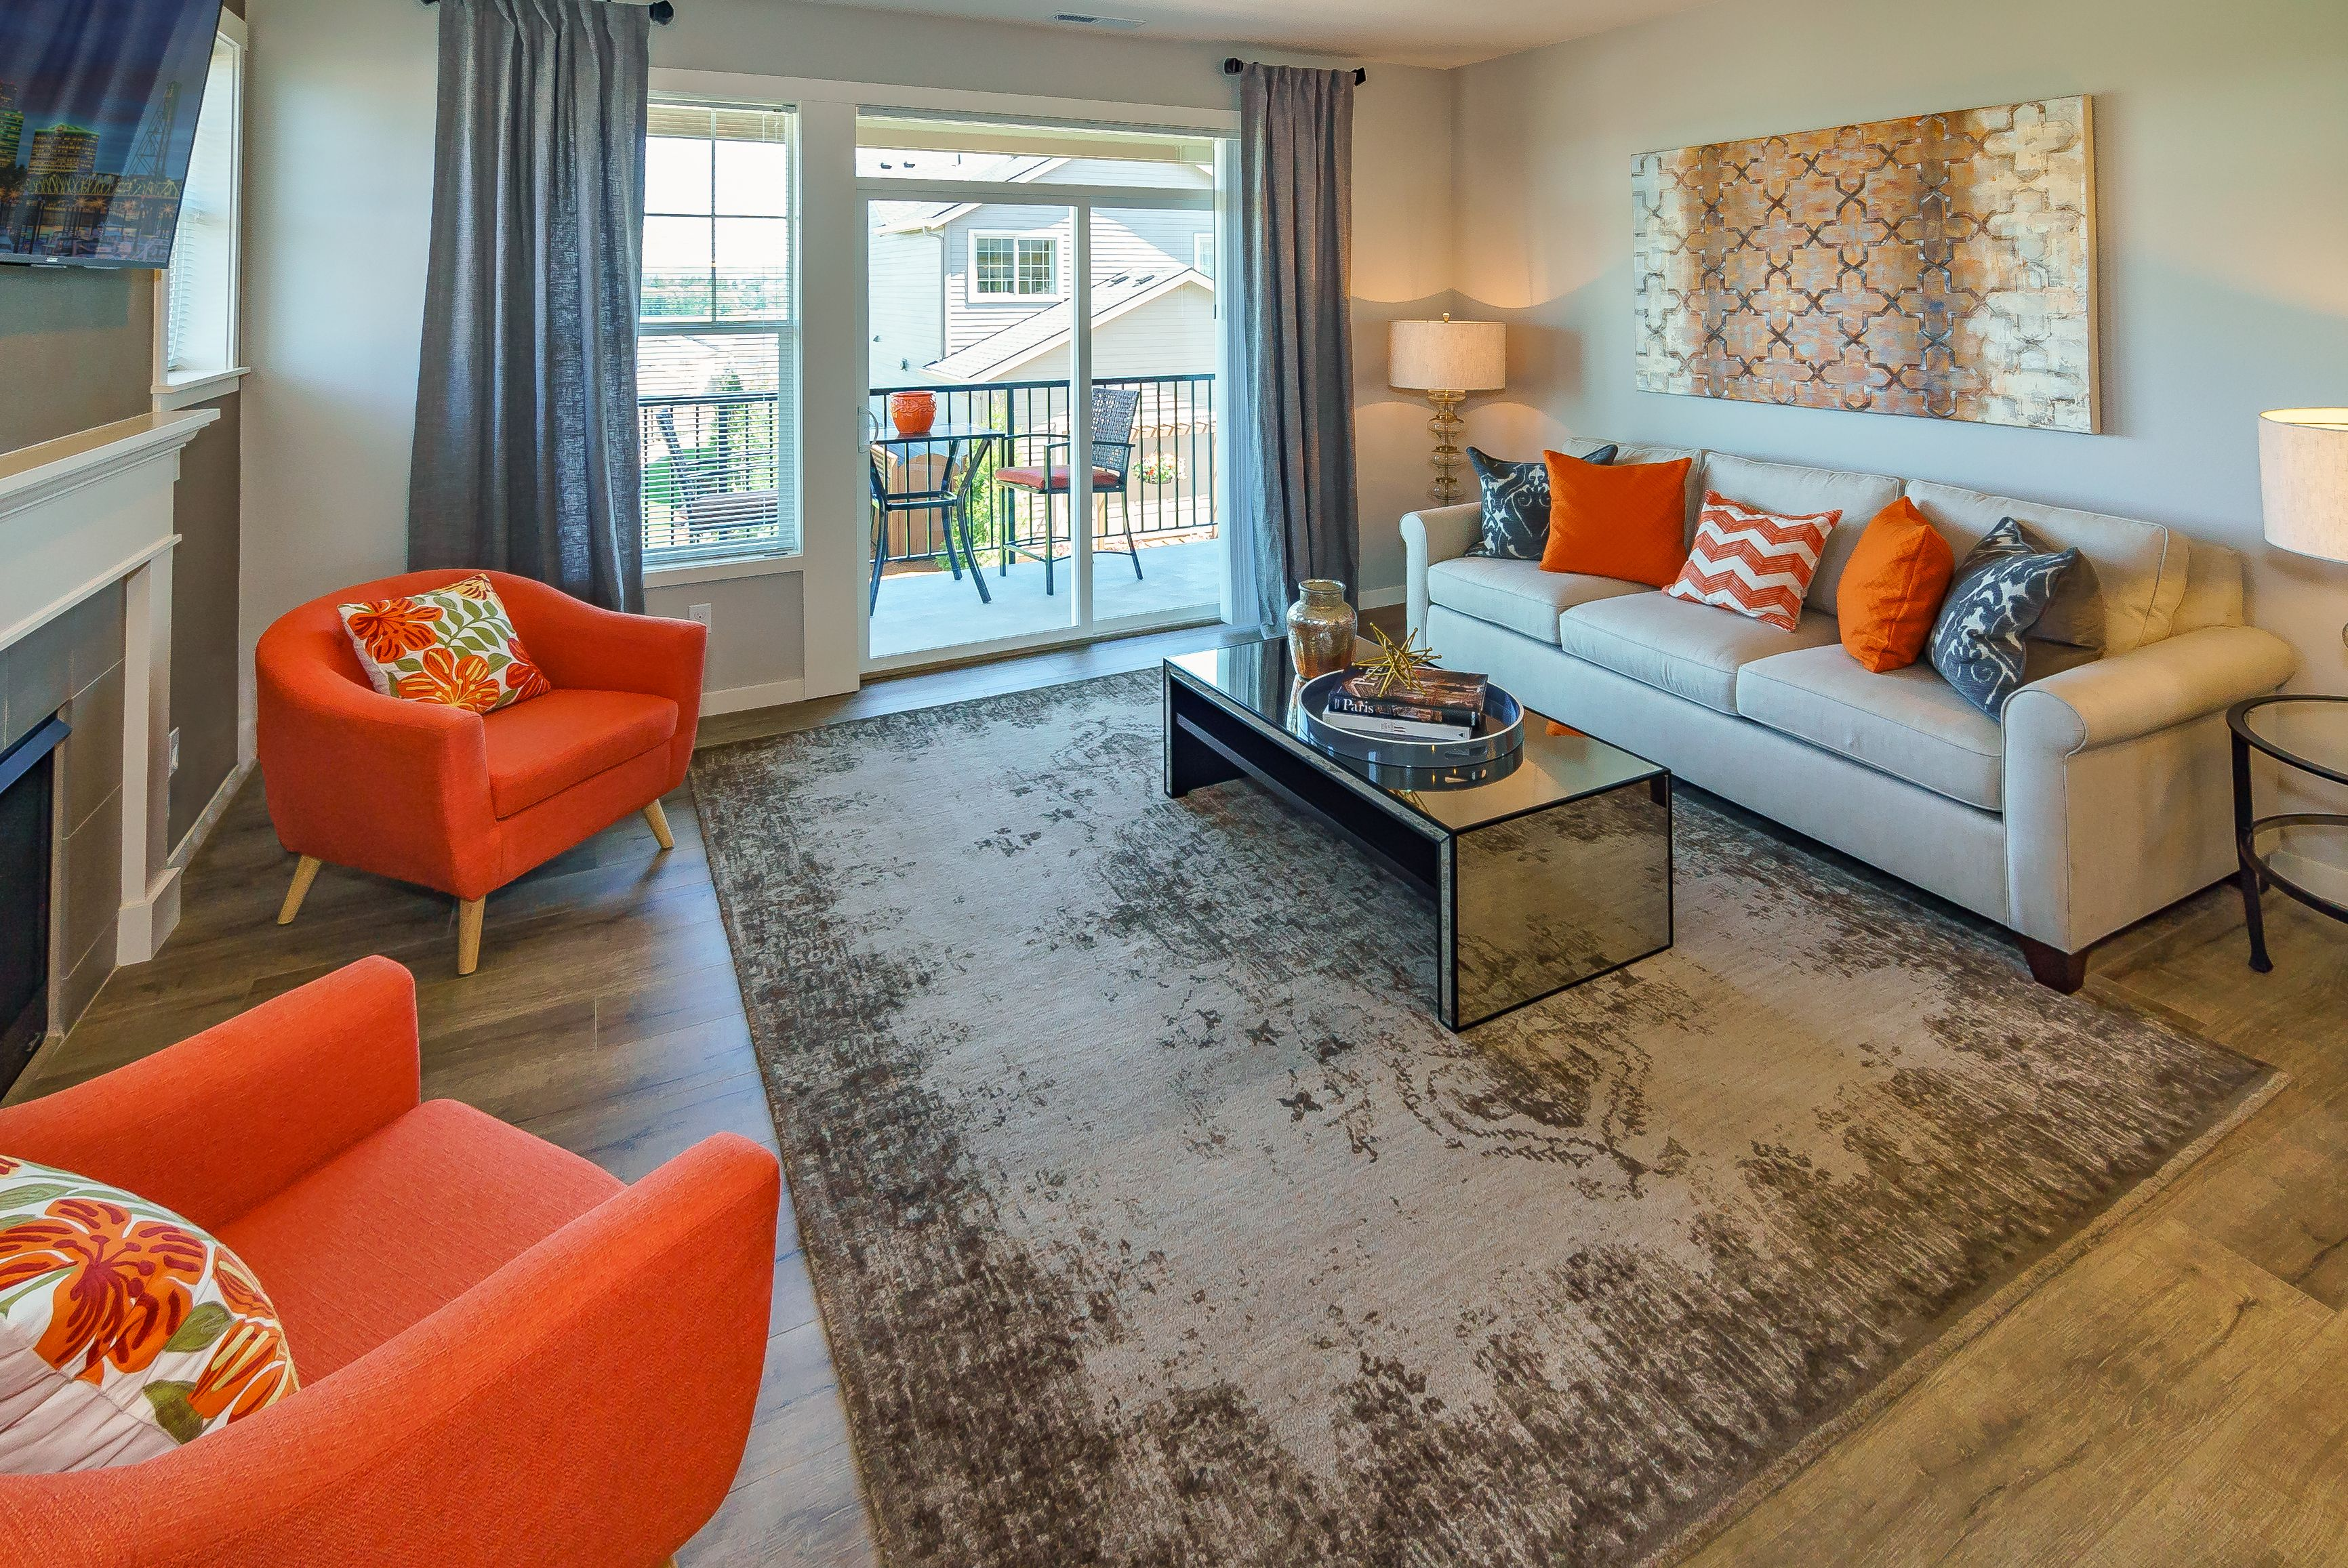 The Willow at Polygon at Villebois in Wilsonville, OR #NewHomes #PolygonNWHomes #PolygonOR #Wilsonville #OR